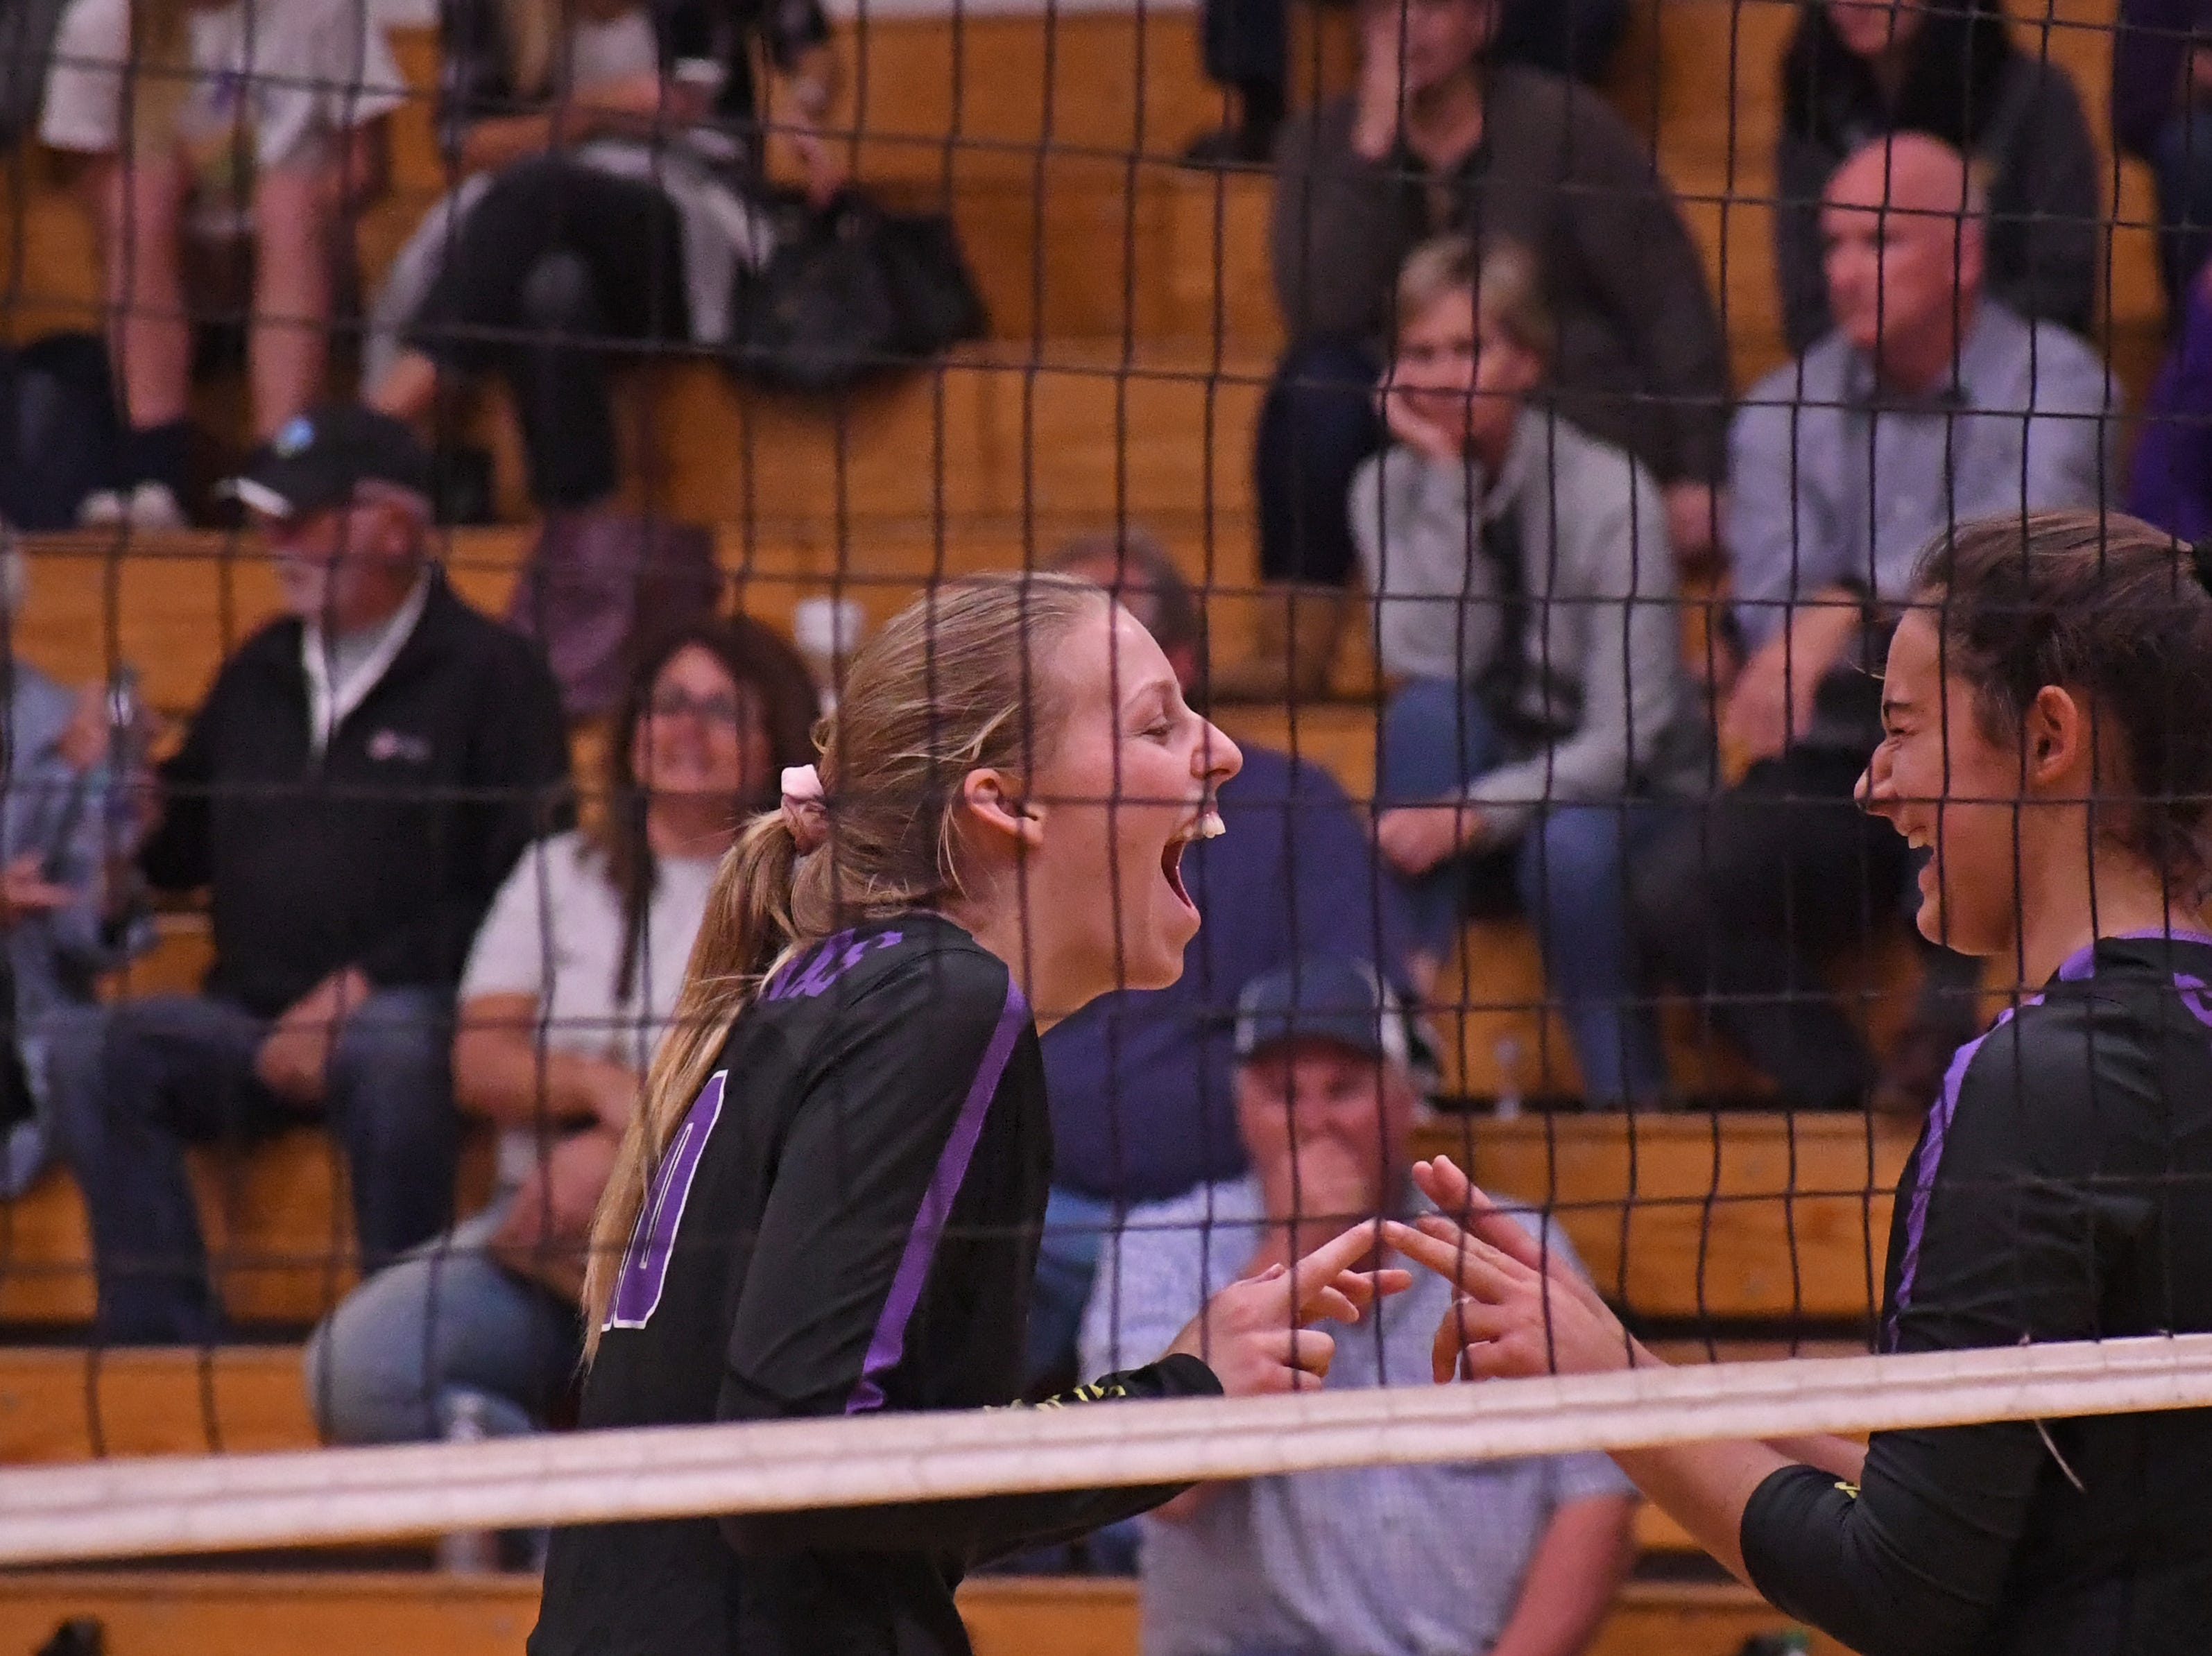 Outside hitter Ashleigh Souza (10) and middle blocker Christina Chagnon (8) share a laugh between points.